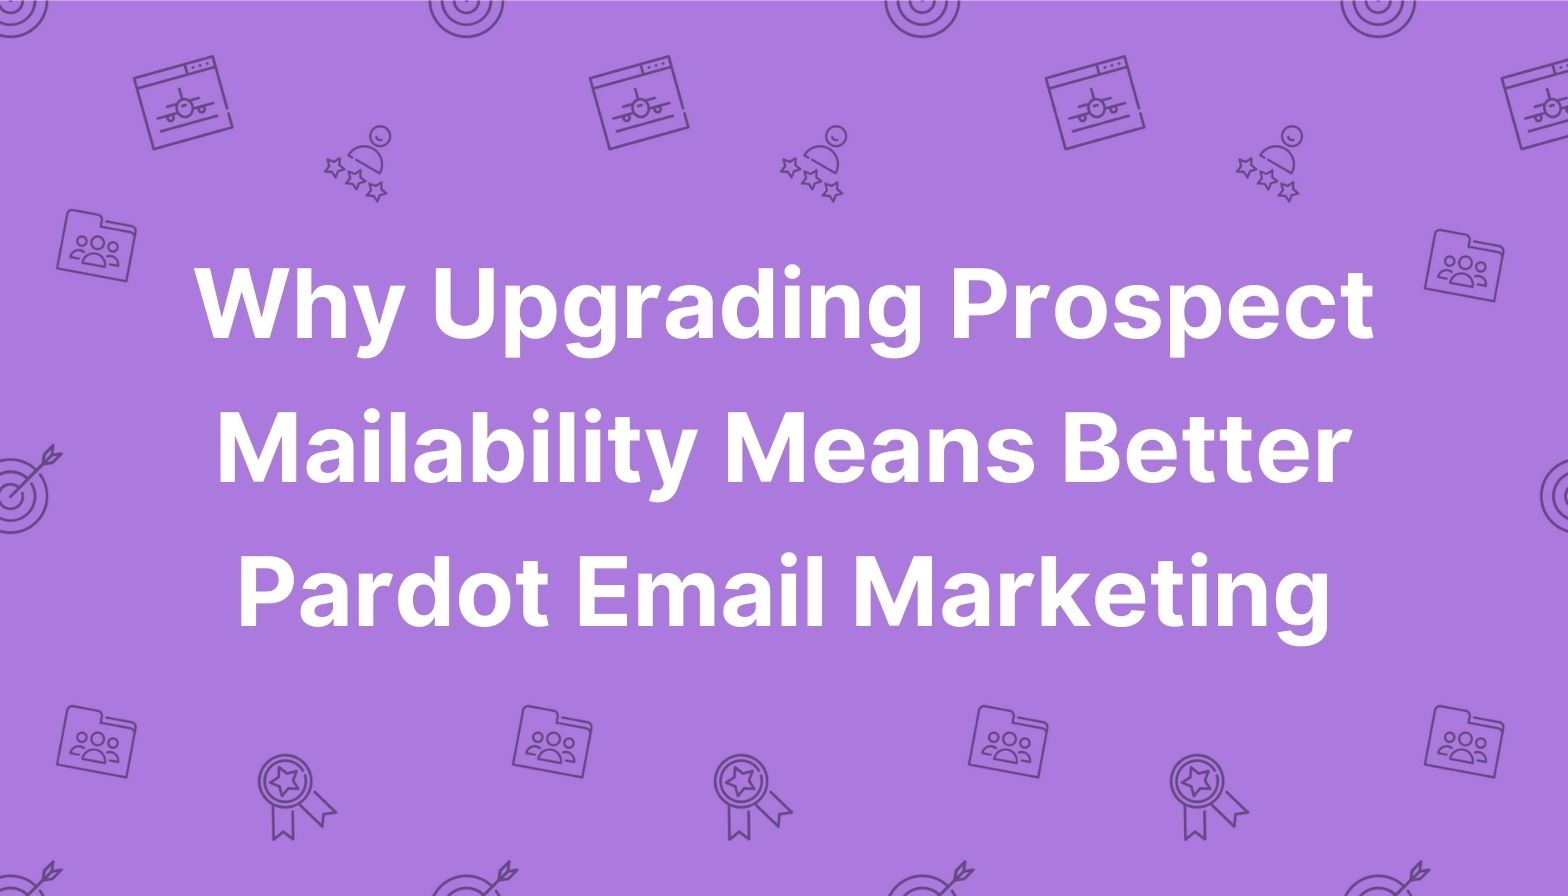 Why Upgrading Prospect Mailability Means Better Pardot Email Marketing